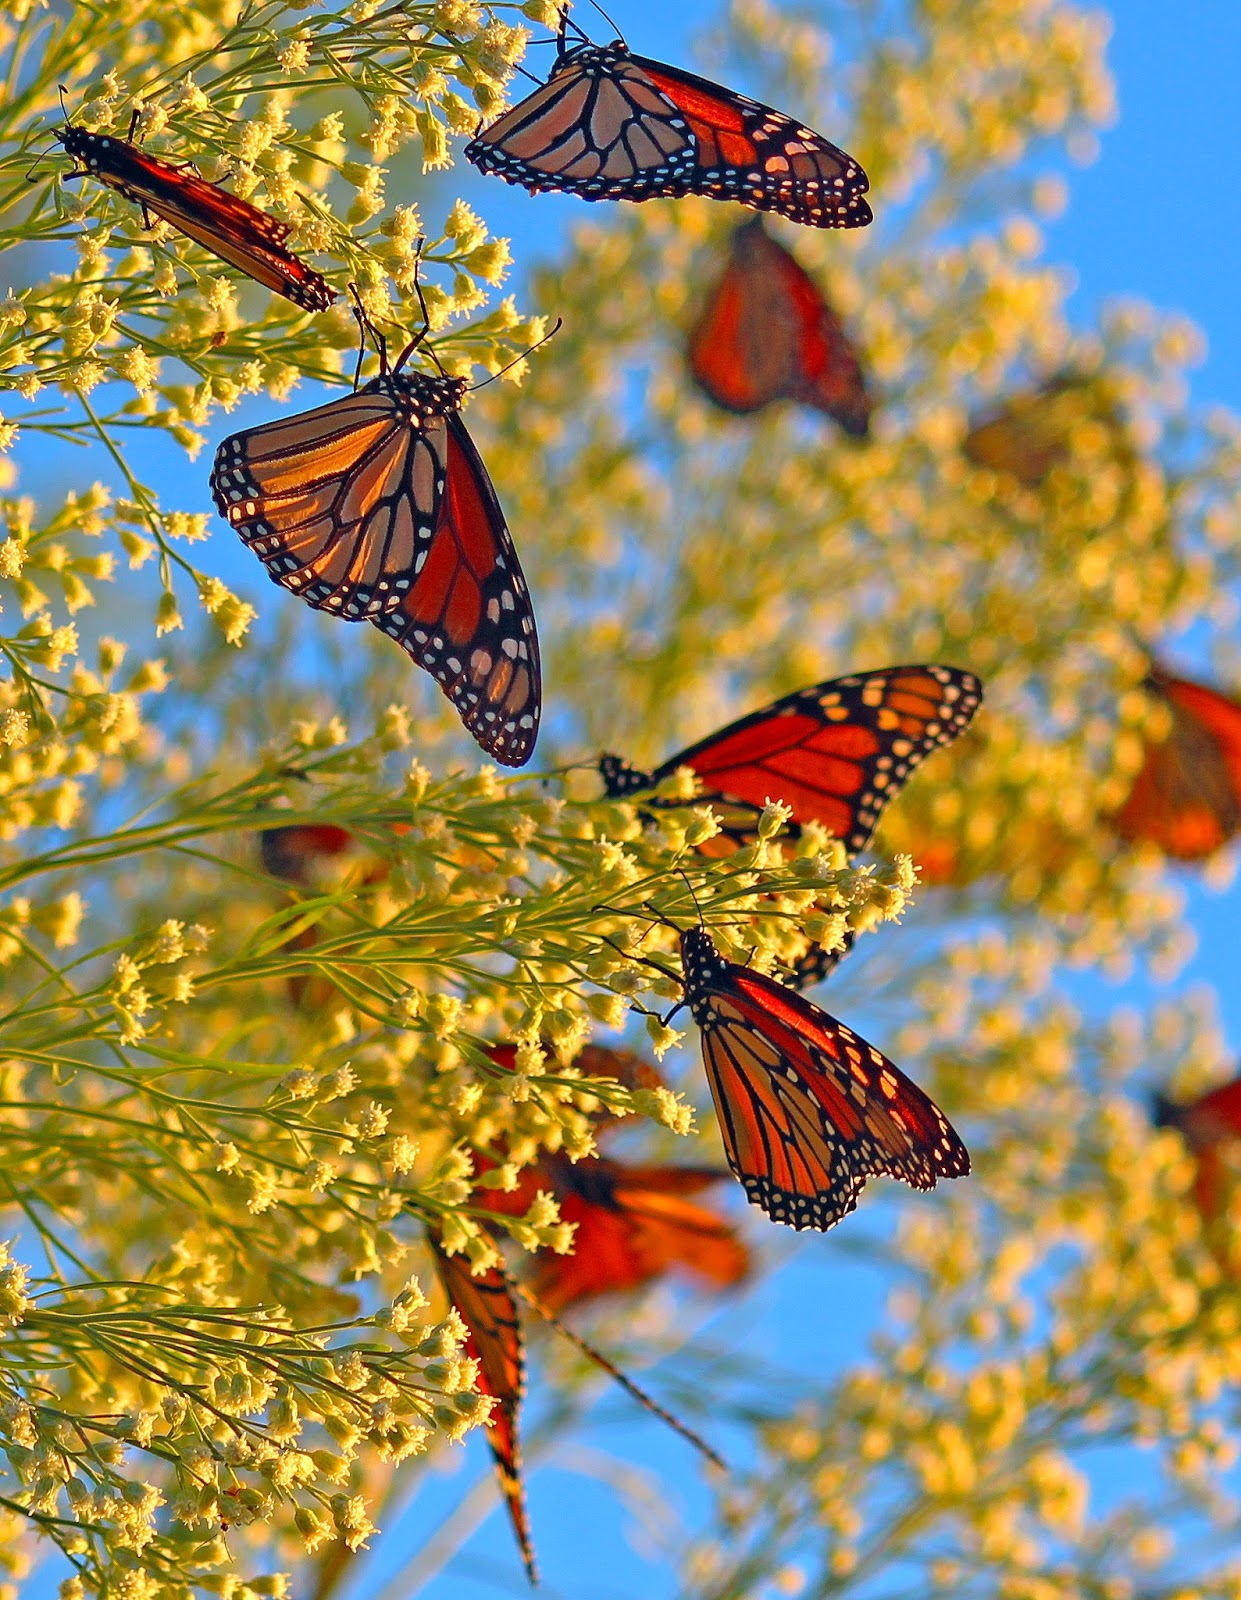 Monarch butterfly migration tree - photo#54